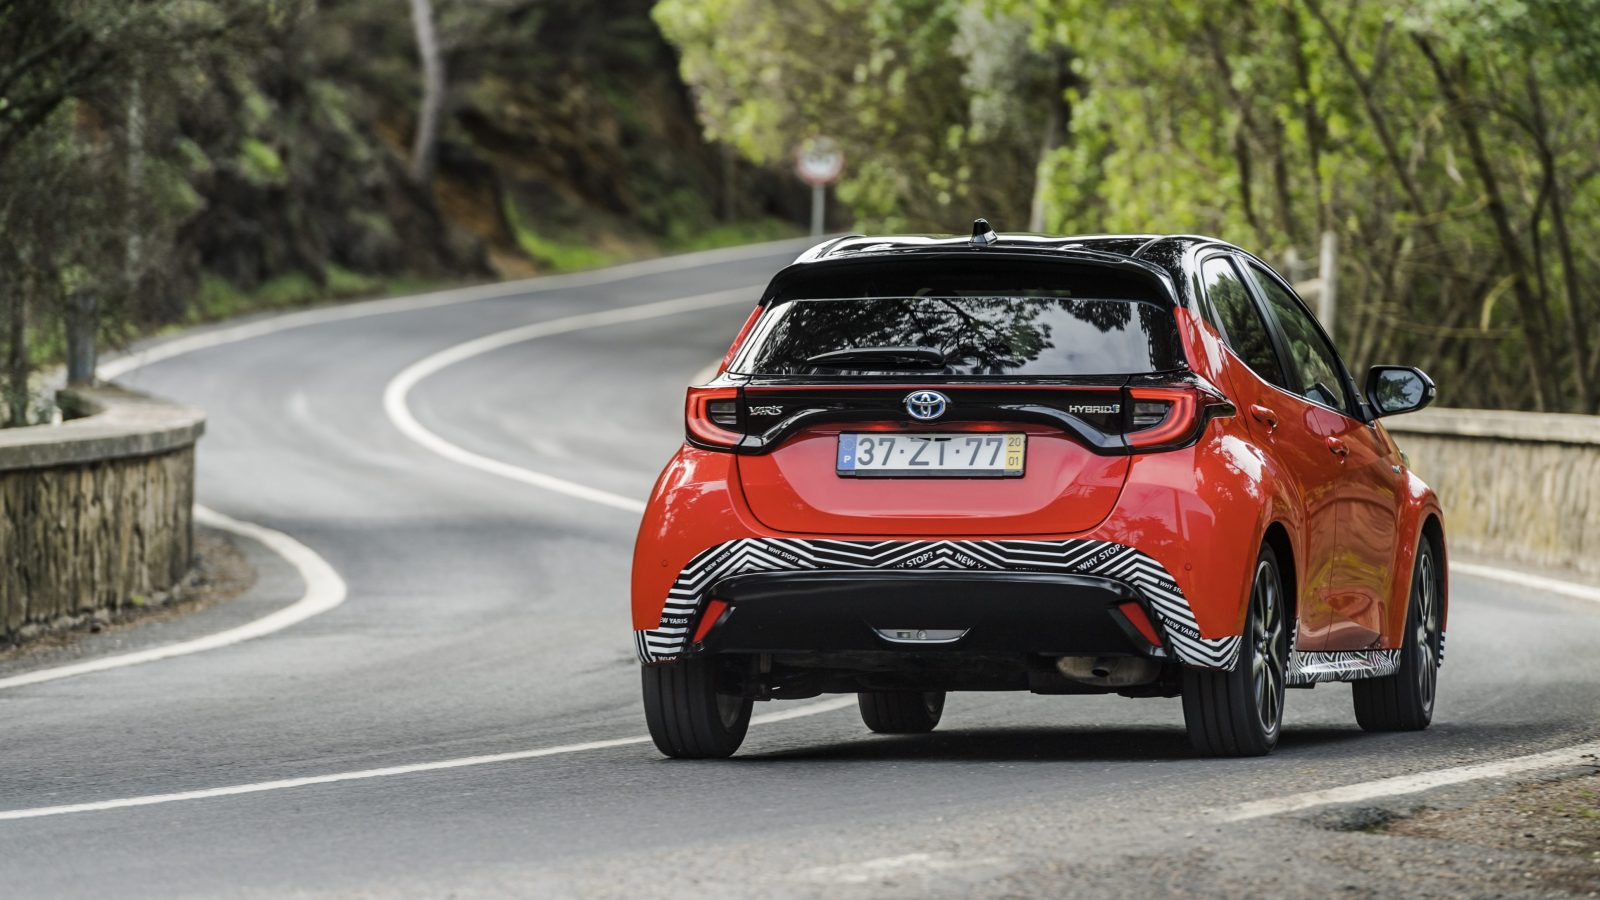 Rear view of prototype Toyota Yaris driving through twisting corners